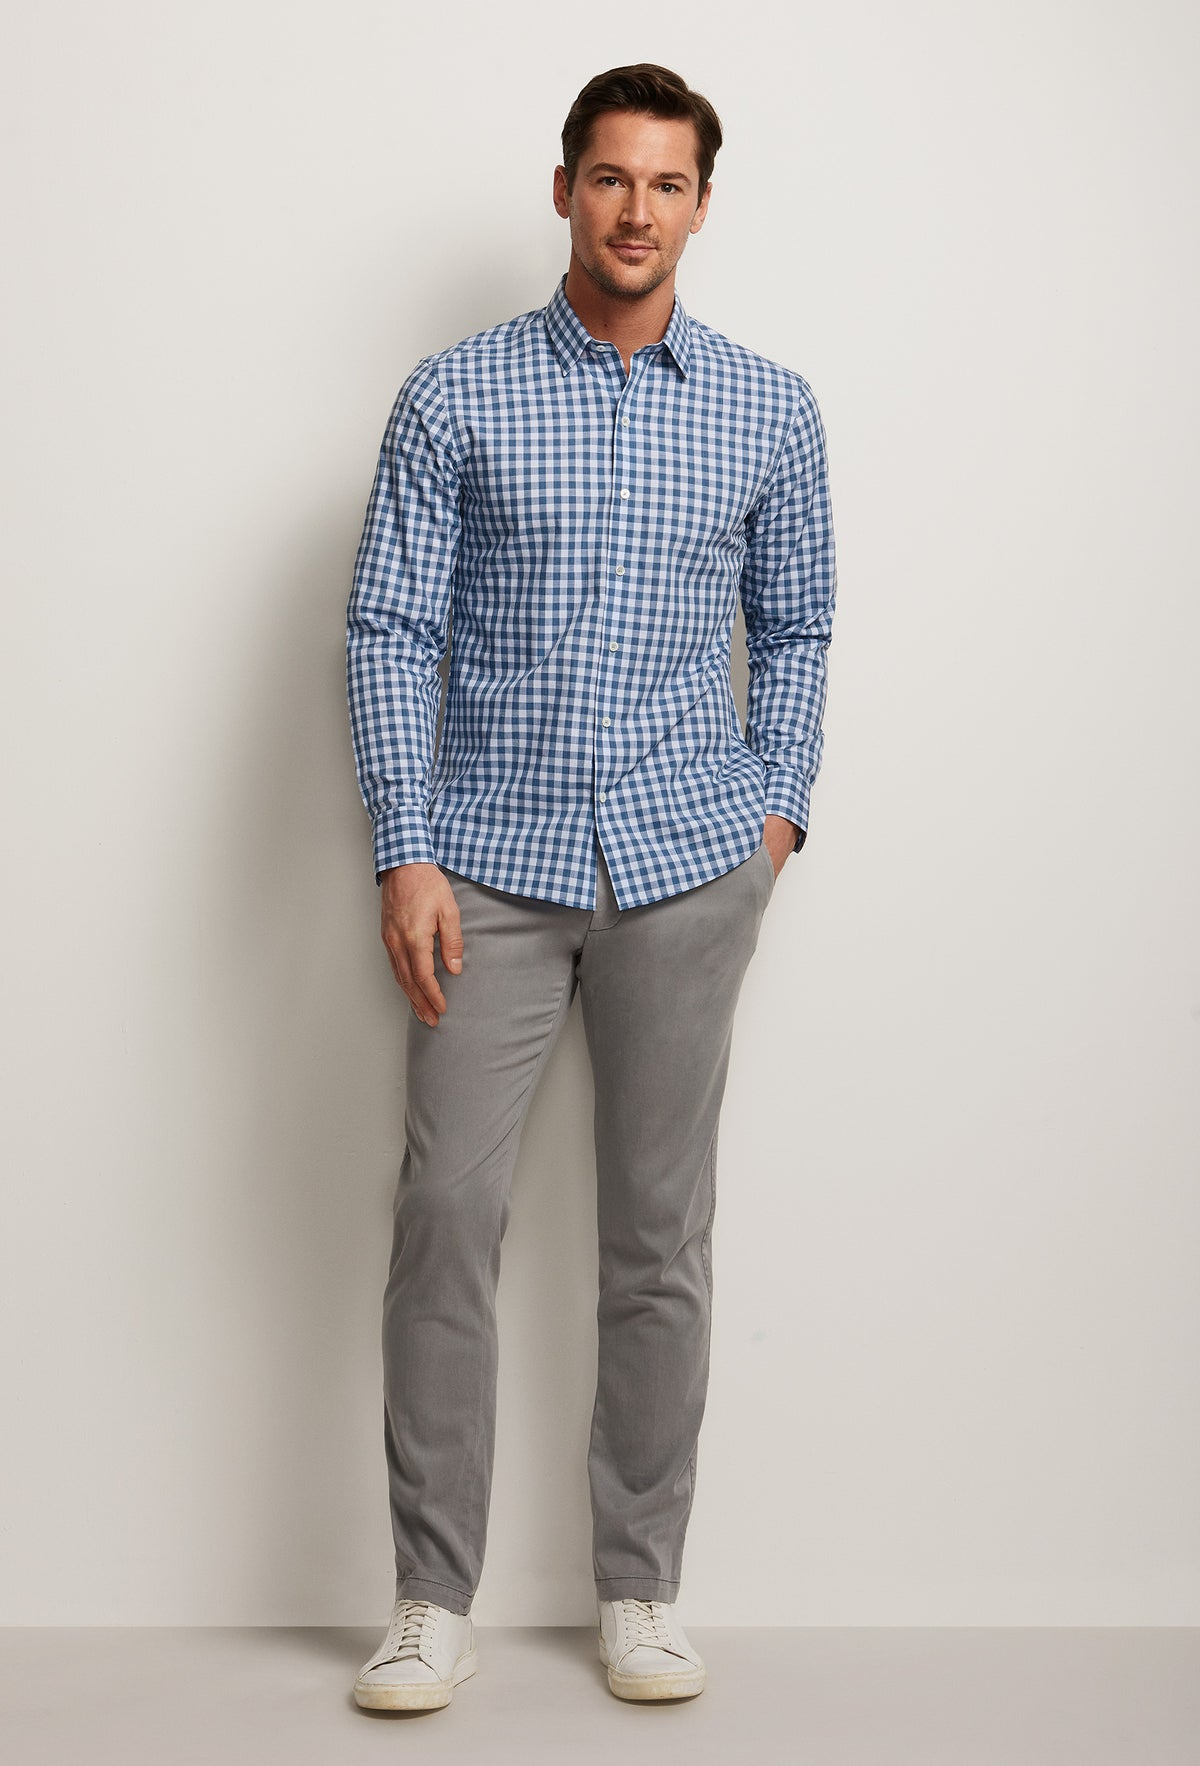 ZACHARY-PRELL-Schwantes-ShirtsModern-Menswear-New-Dress-Code